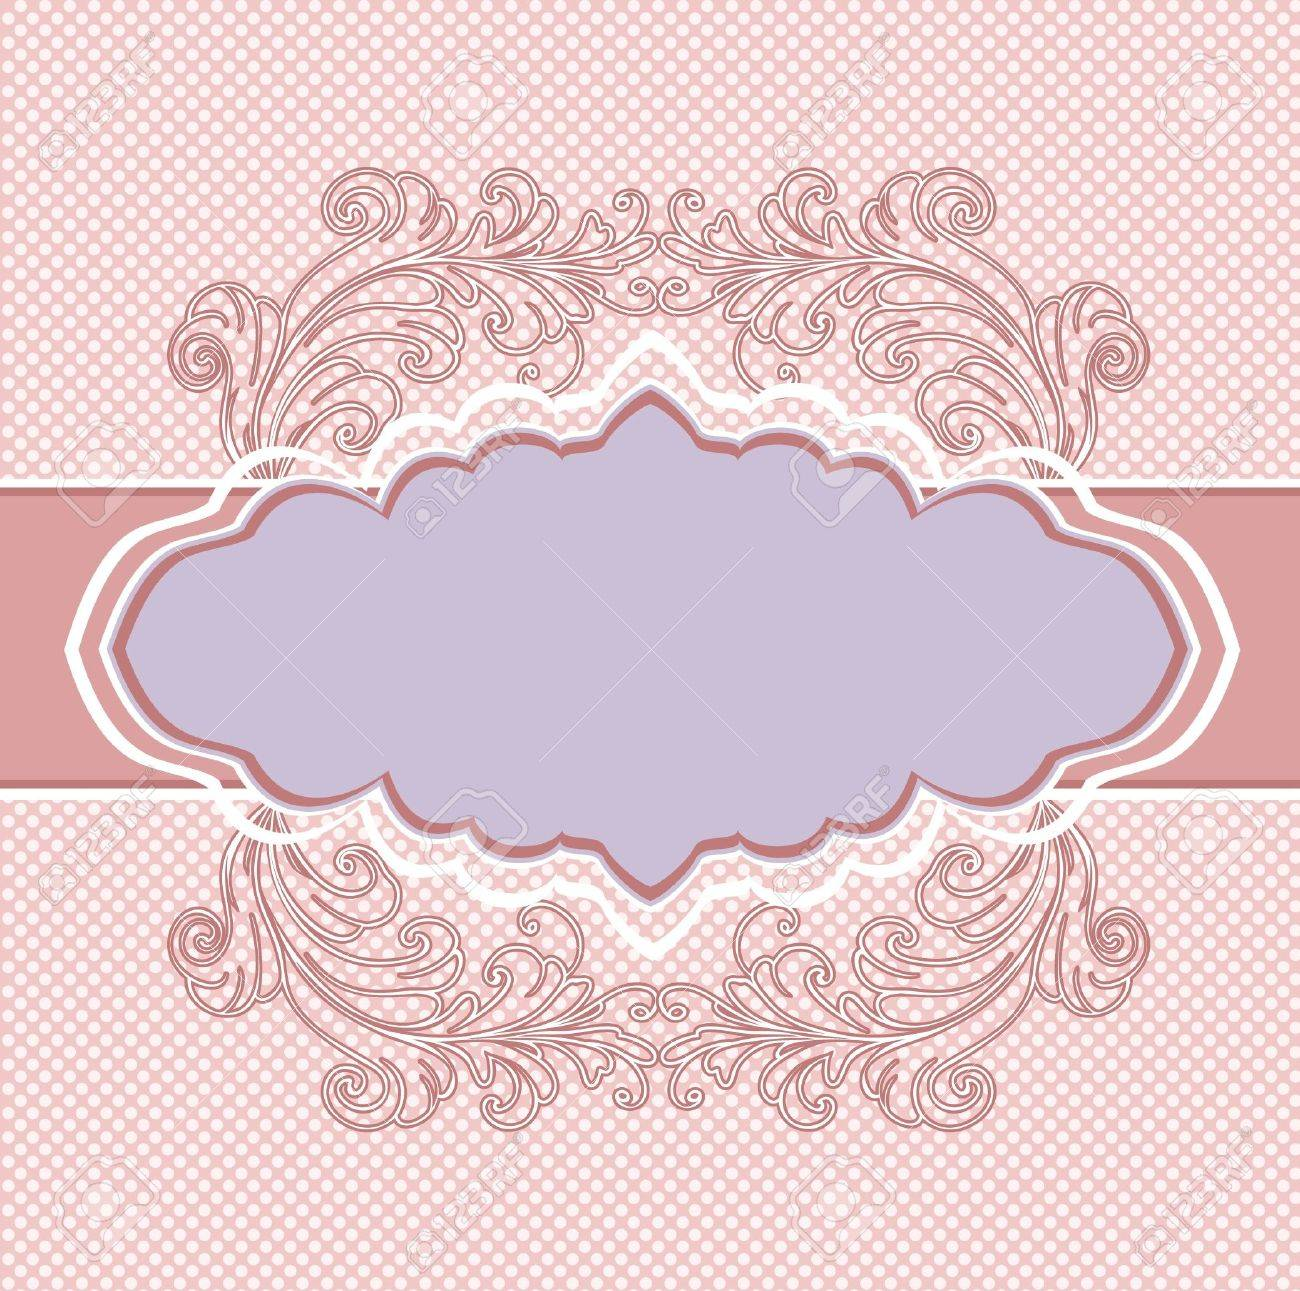 Vintage Floral Background Royalty Free Cliparts Vectors And